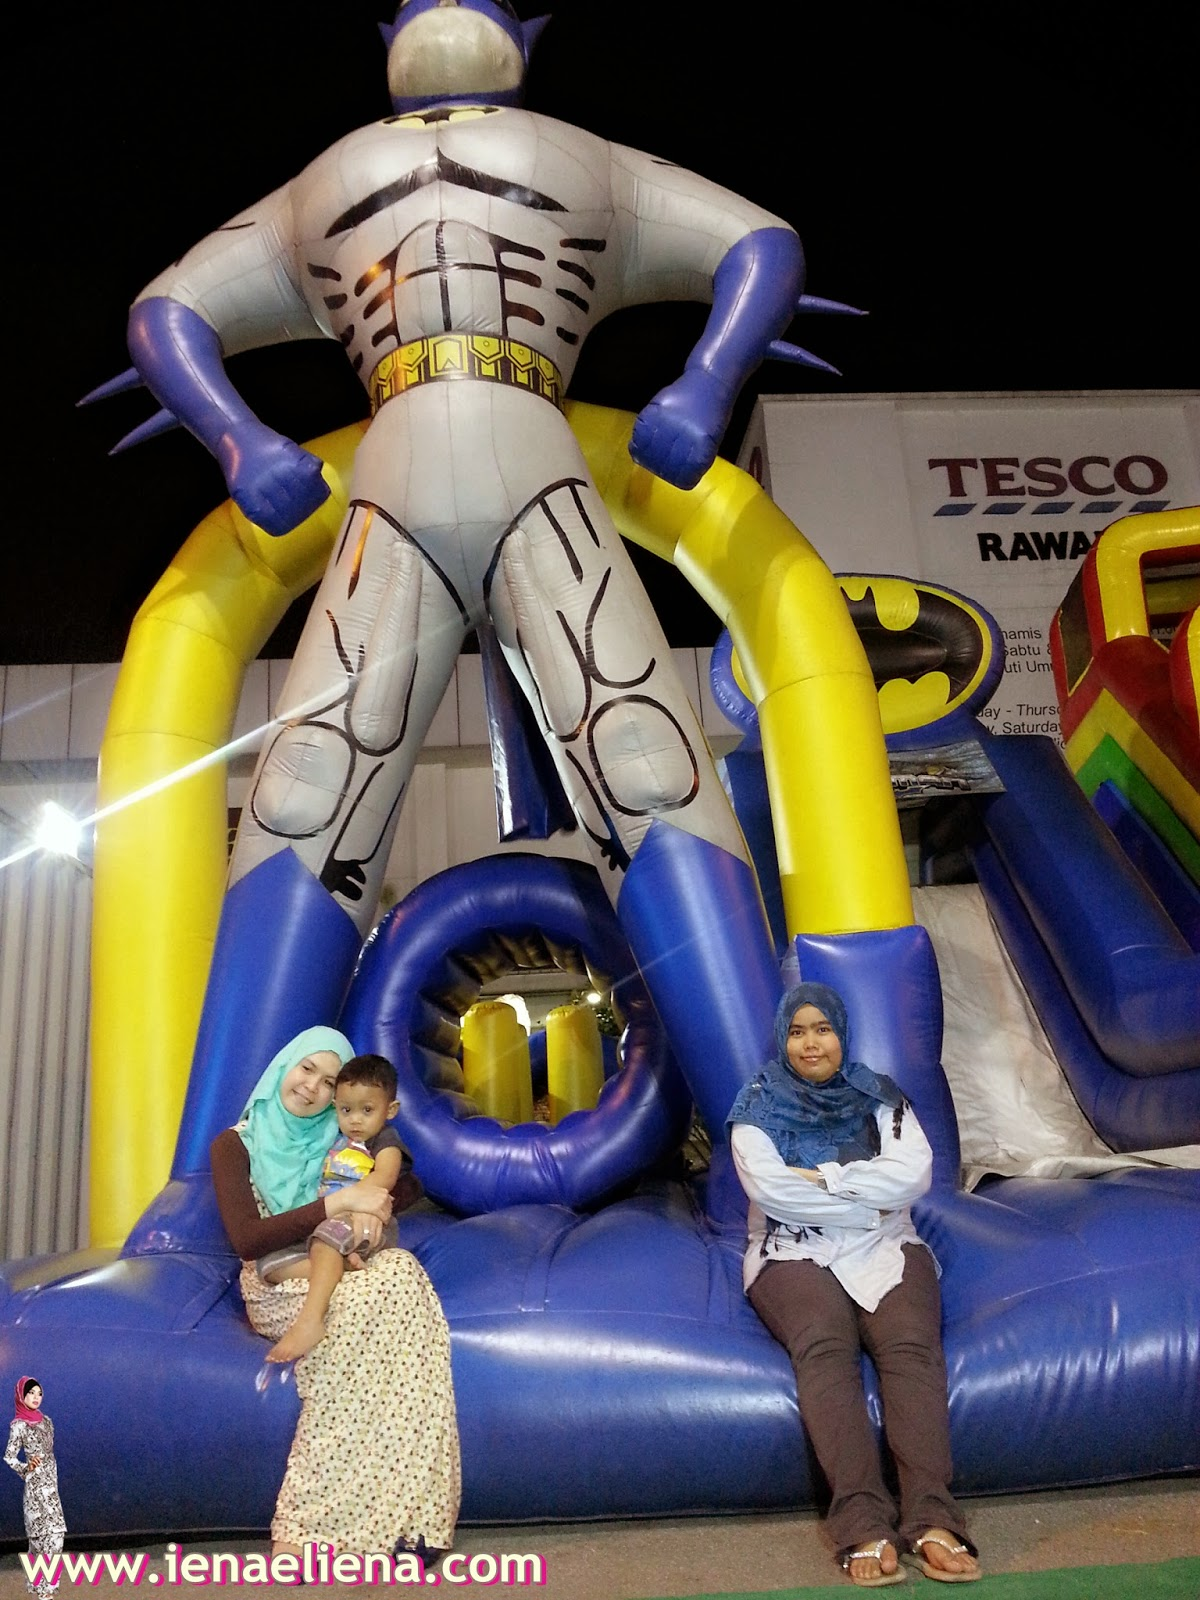 TESCO RAWANG BANANANA